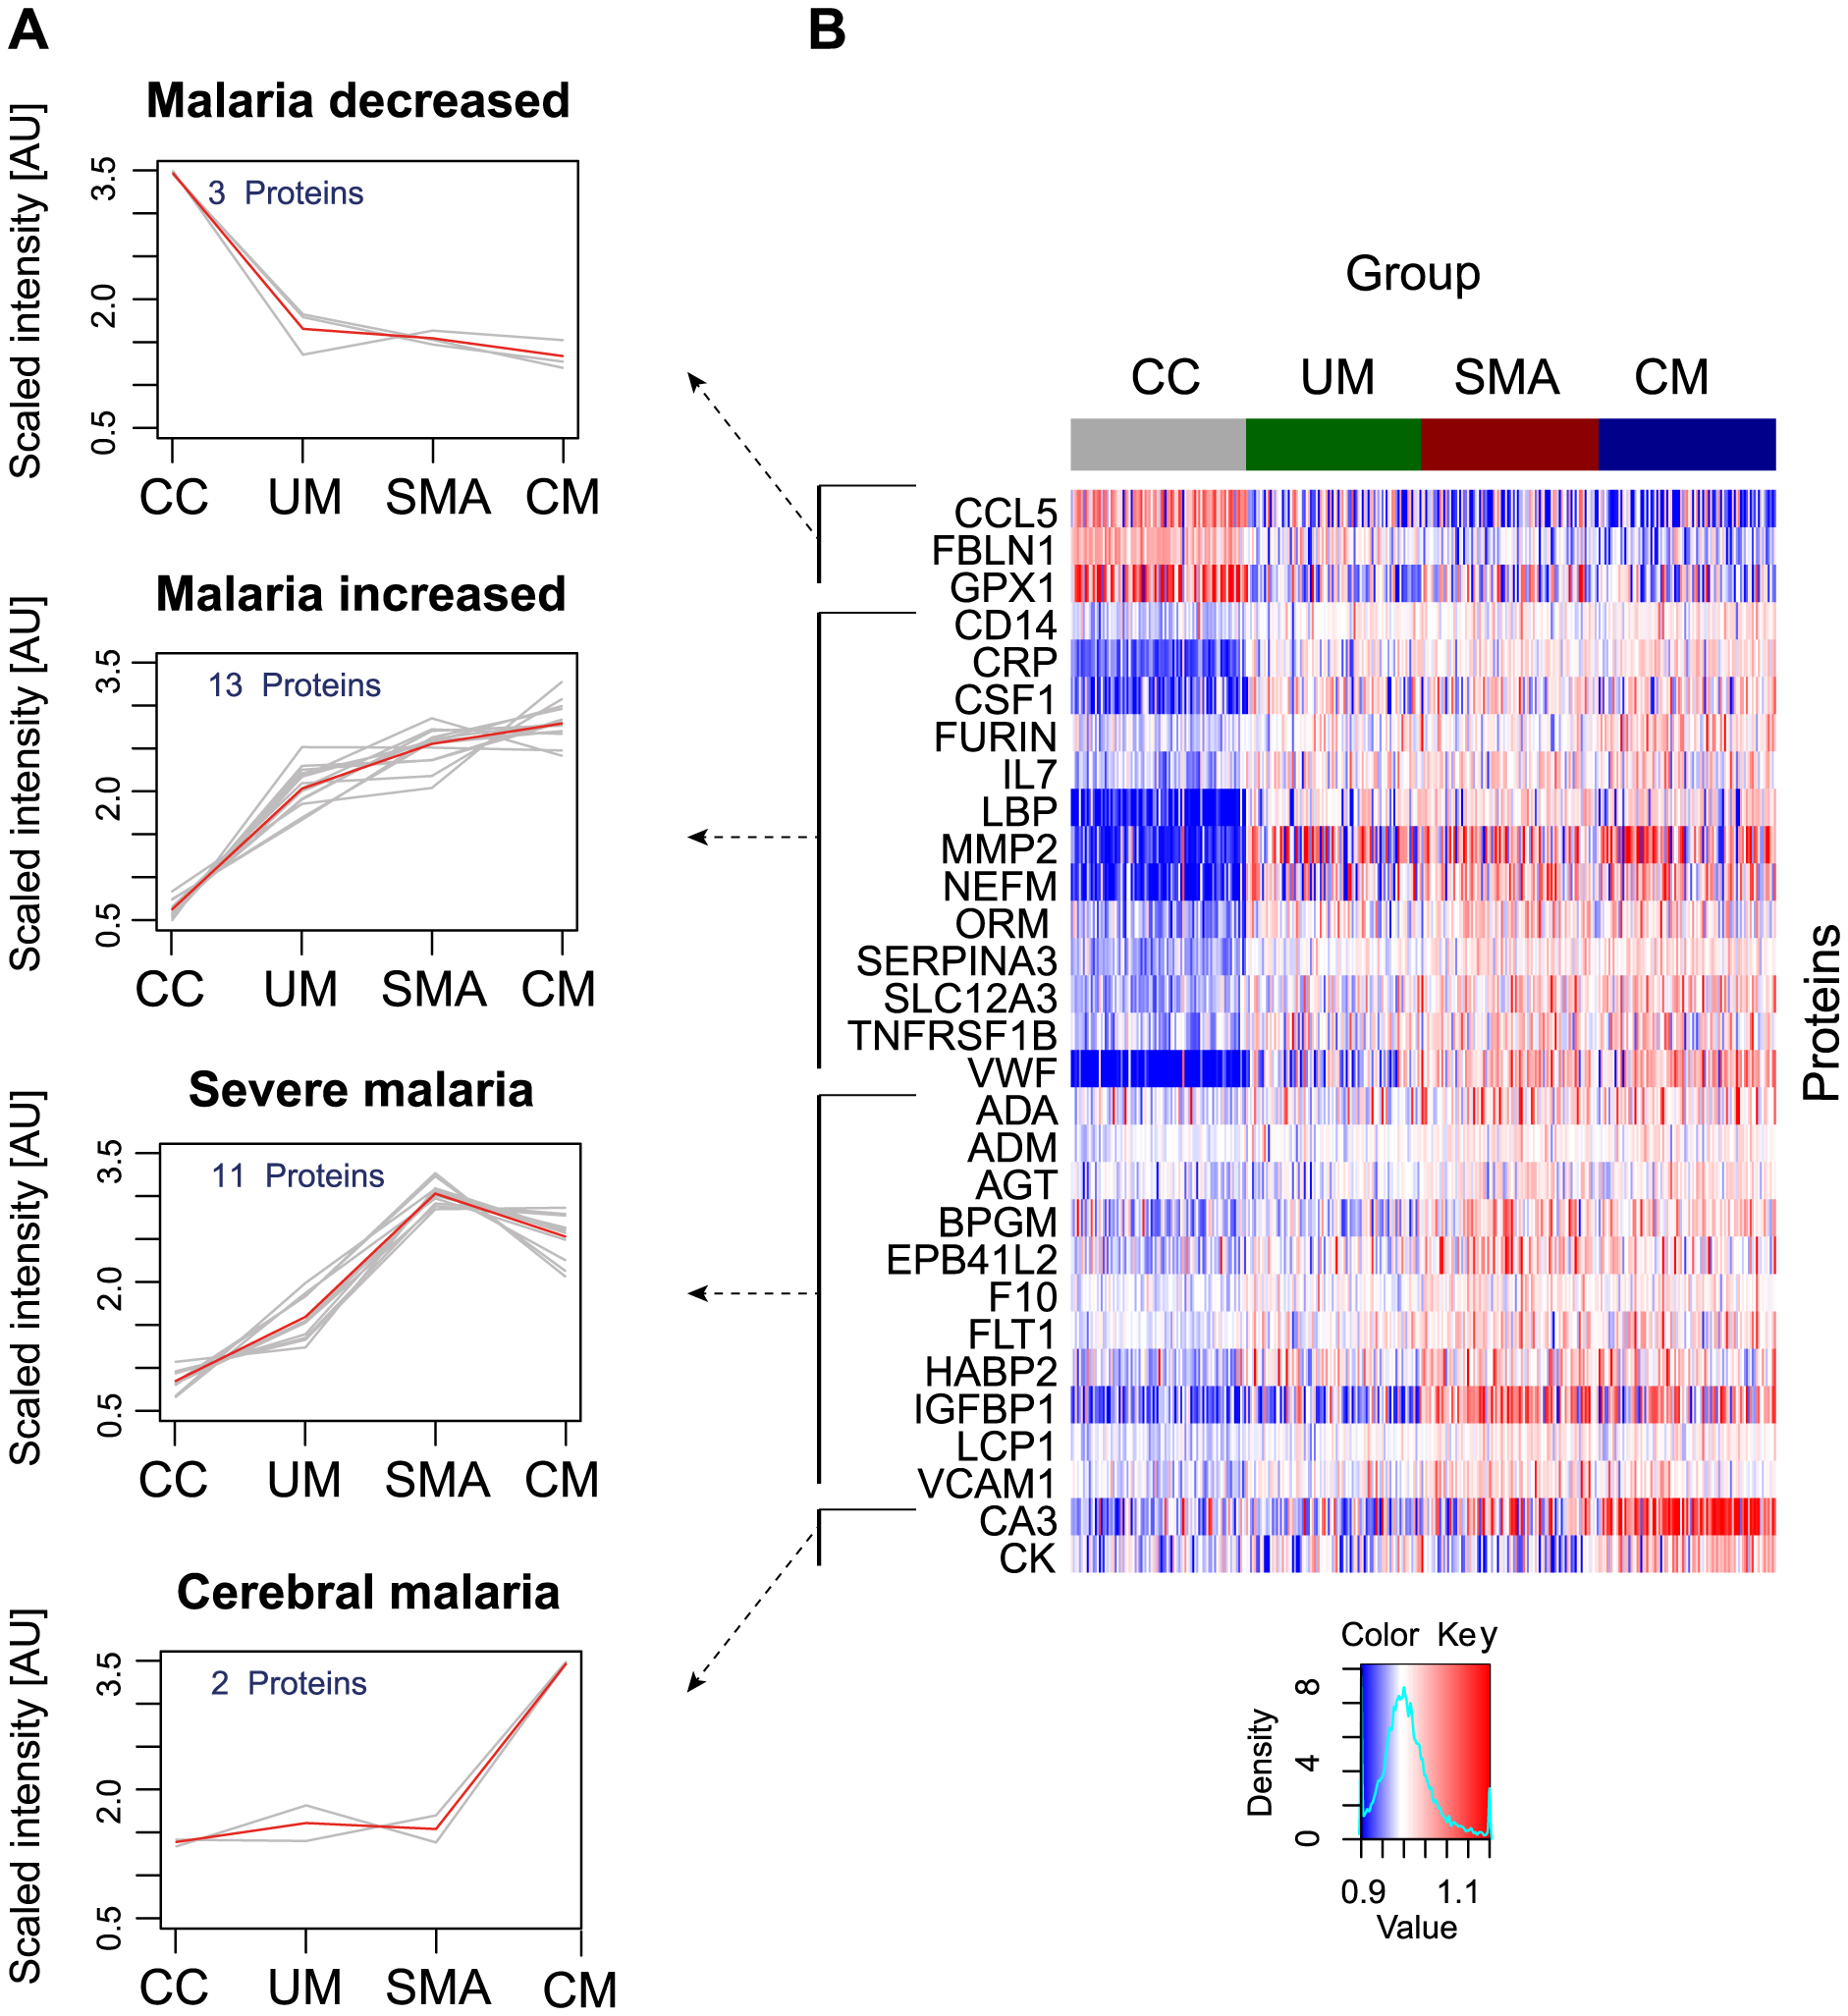 Identification of 29 human proteins discriminating community controls and malaria cases.